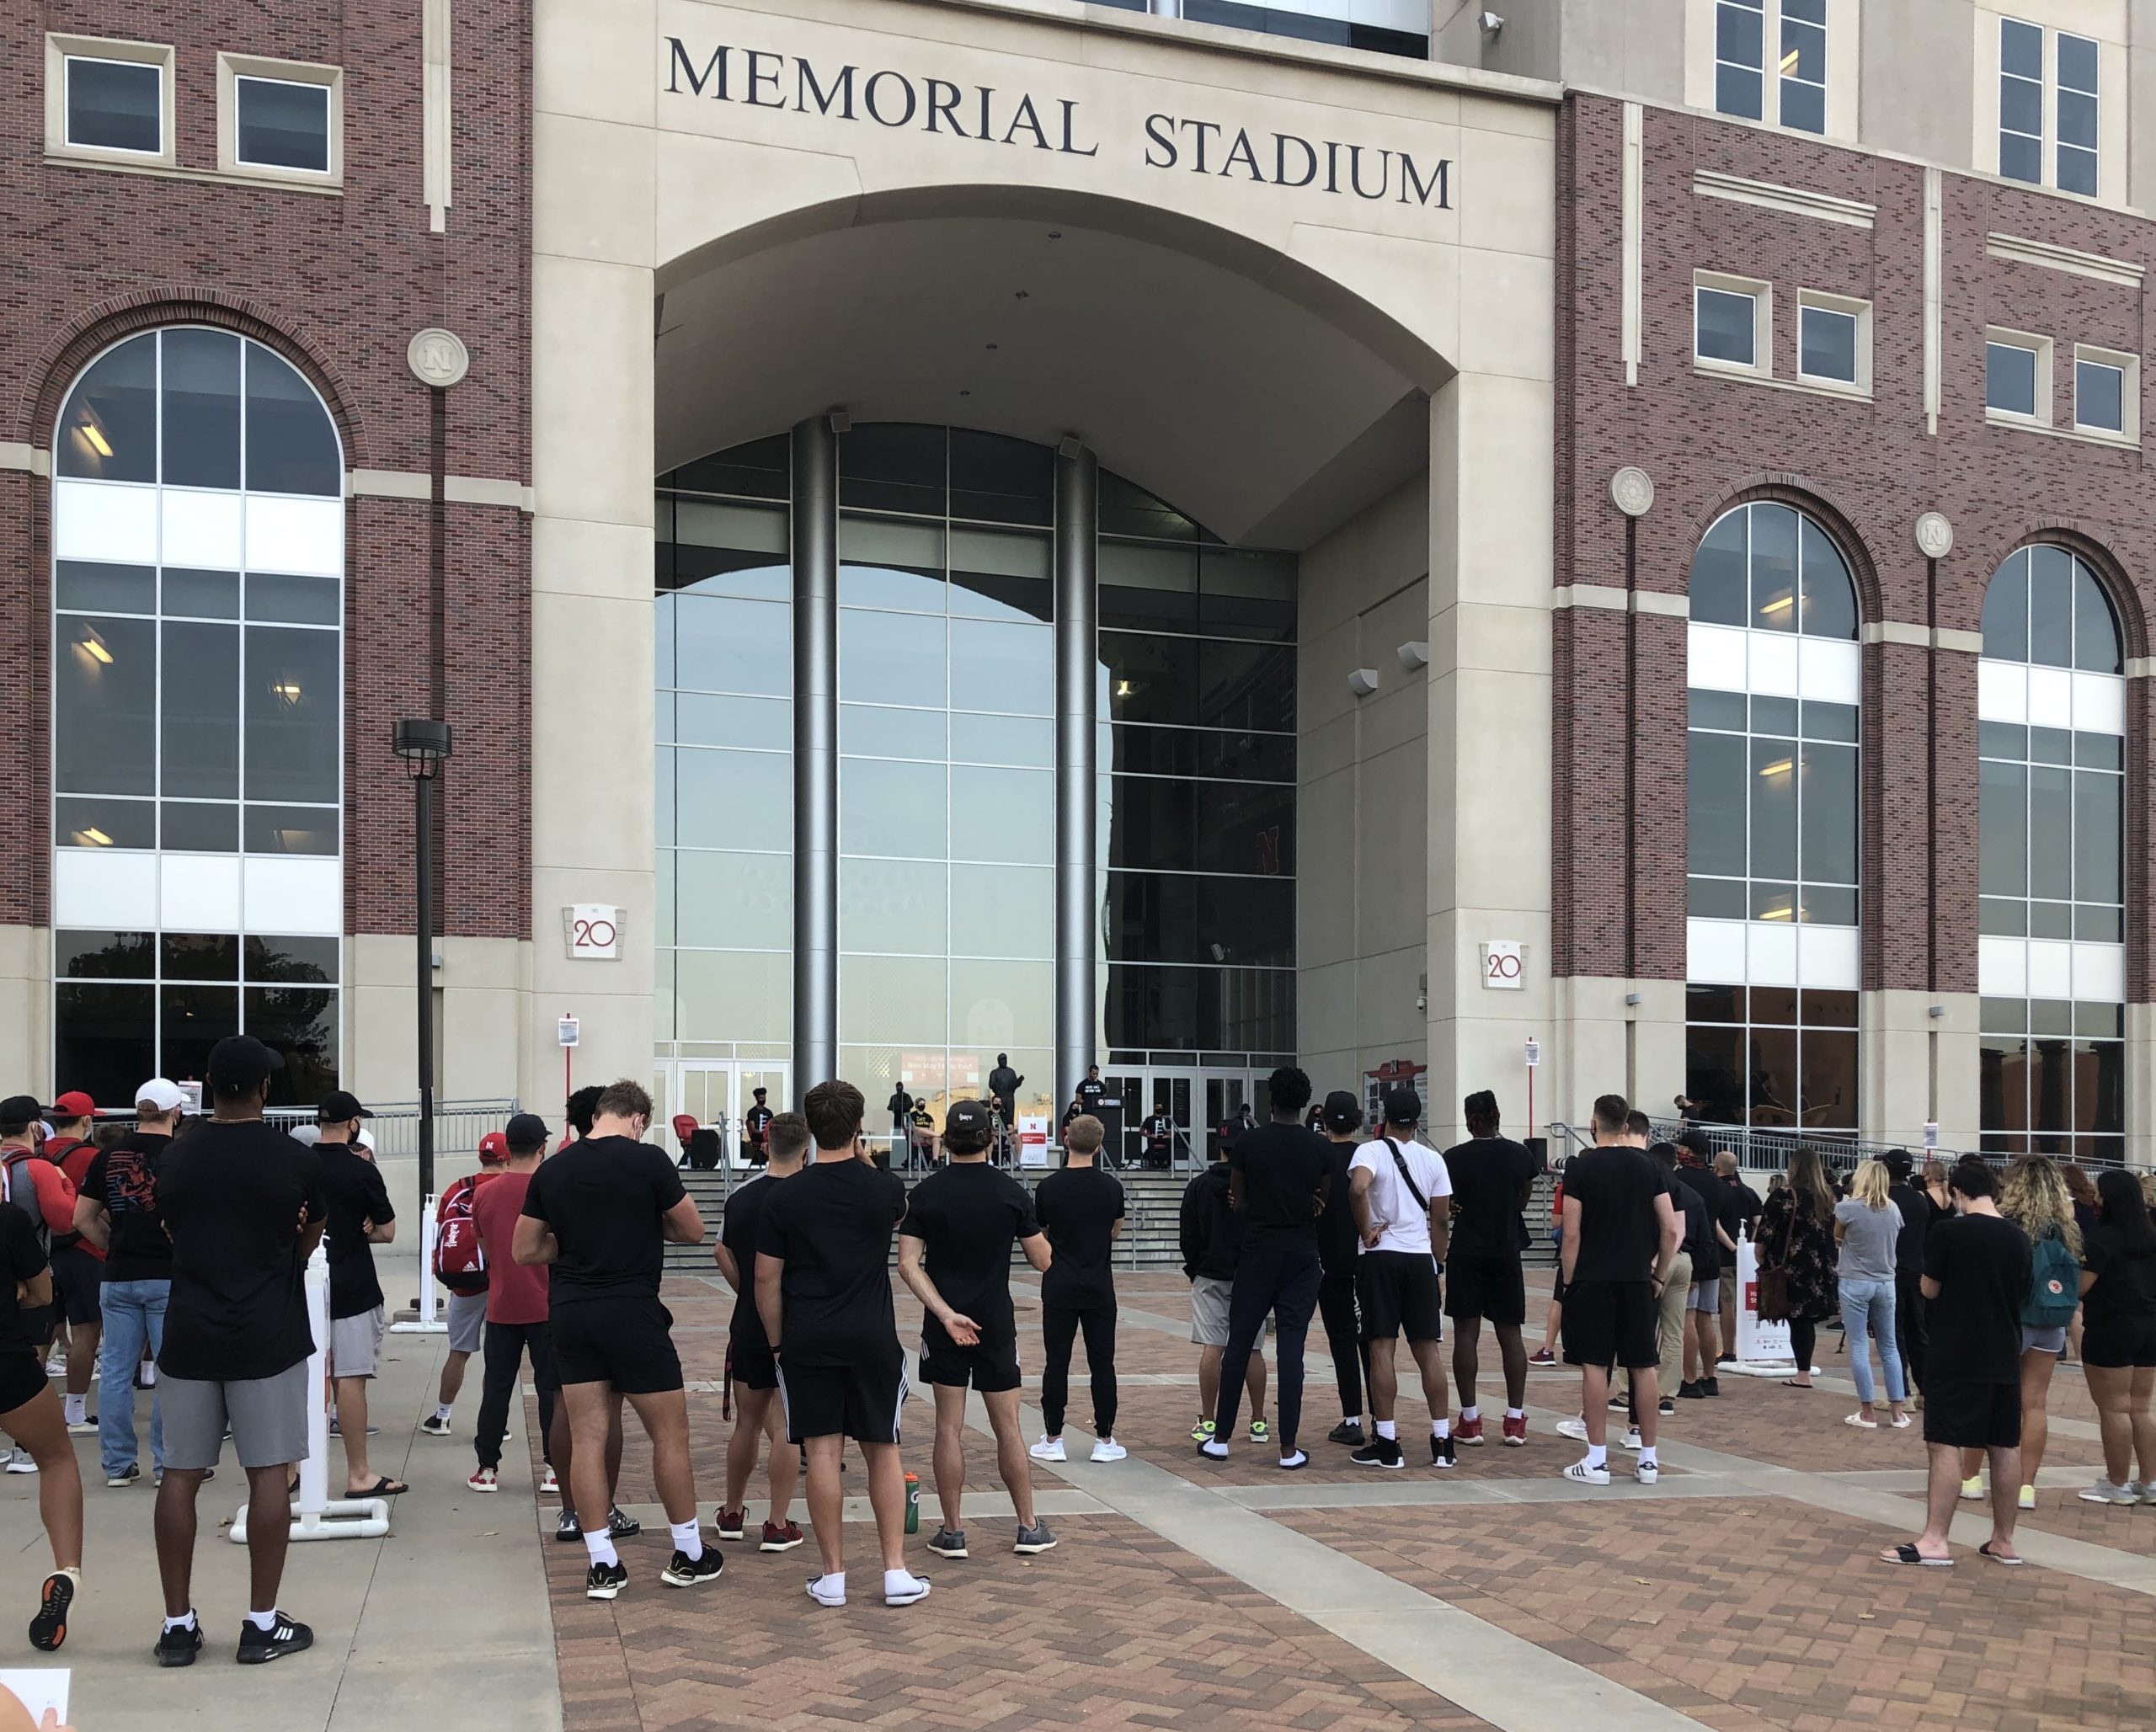 Crowd gathers at Minority Student-Athlete Collective rally in front of memorial stadium